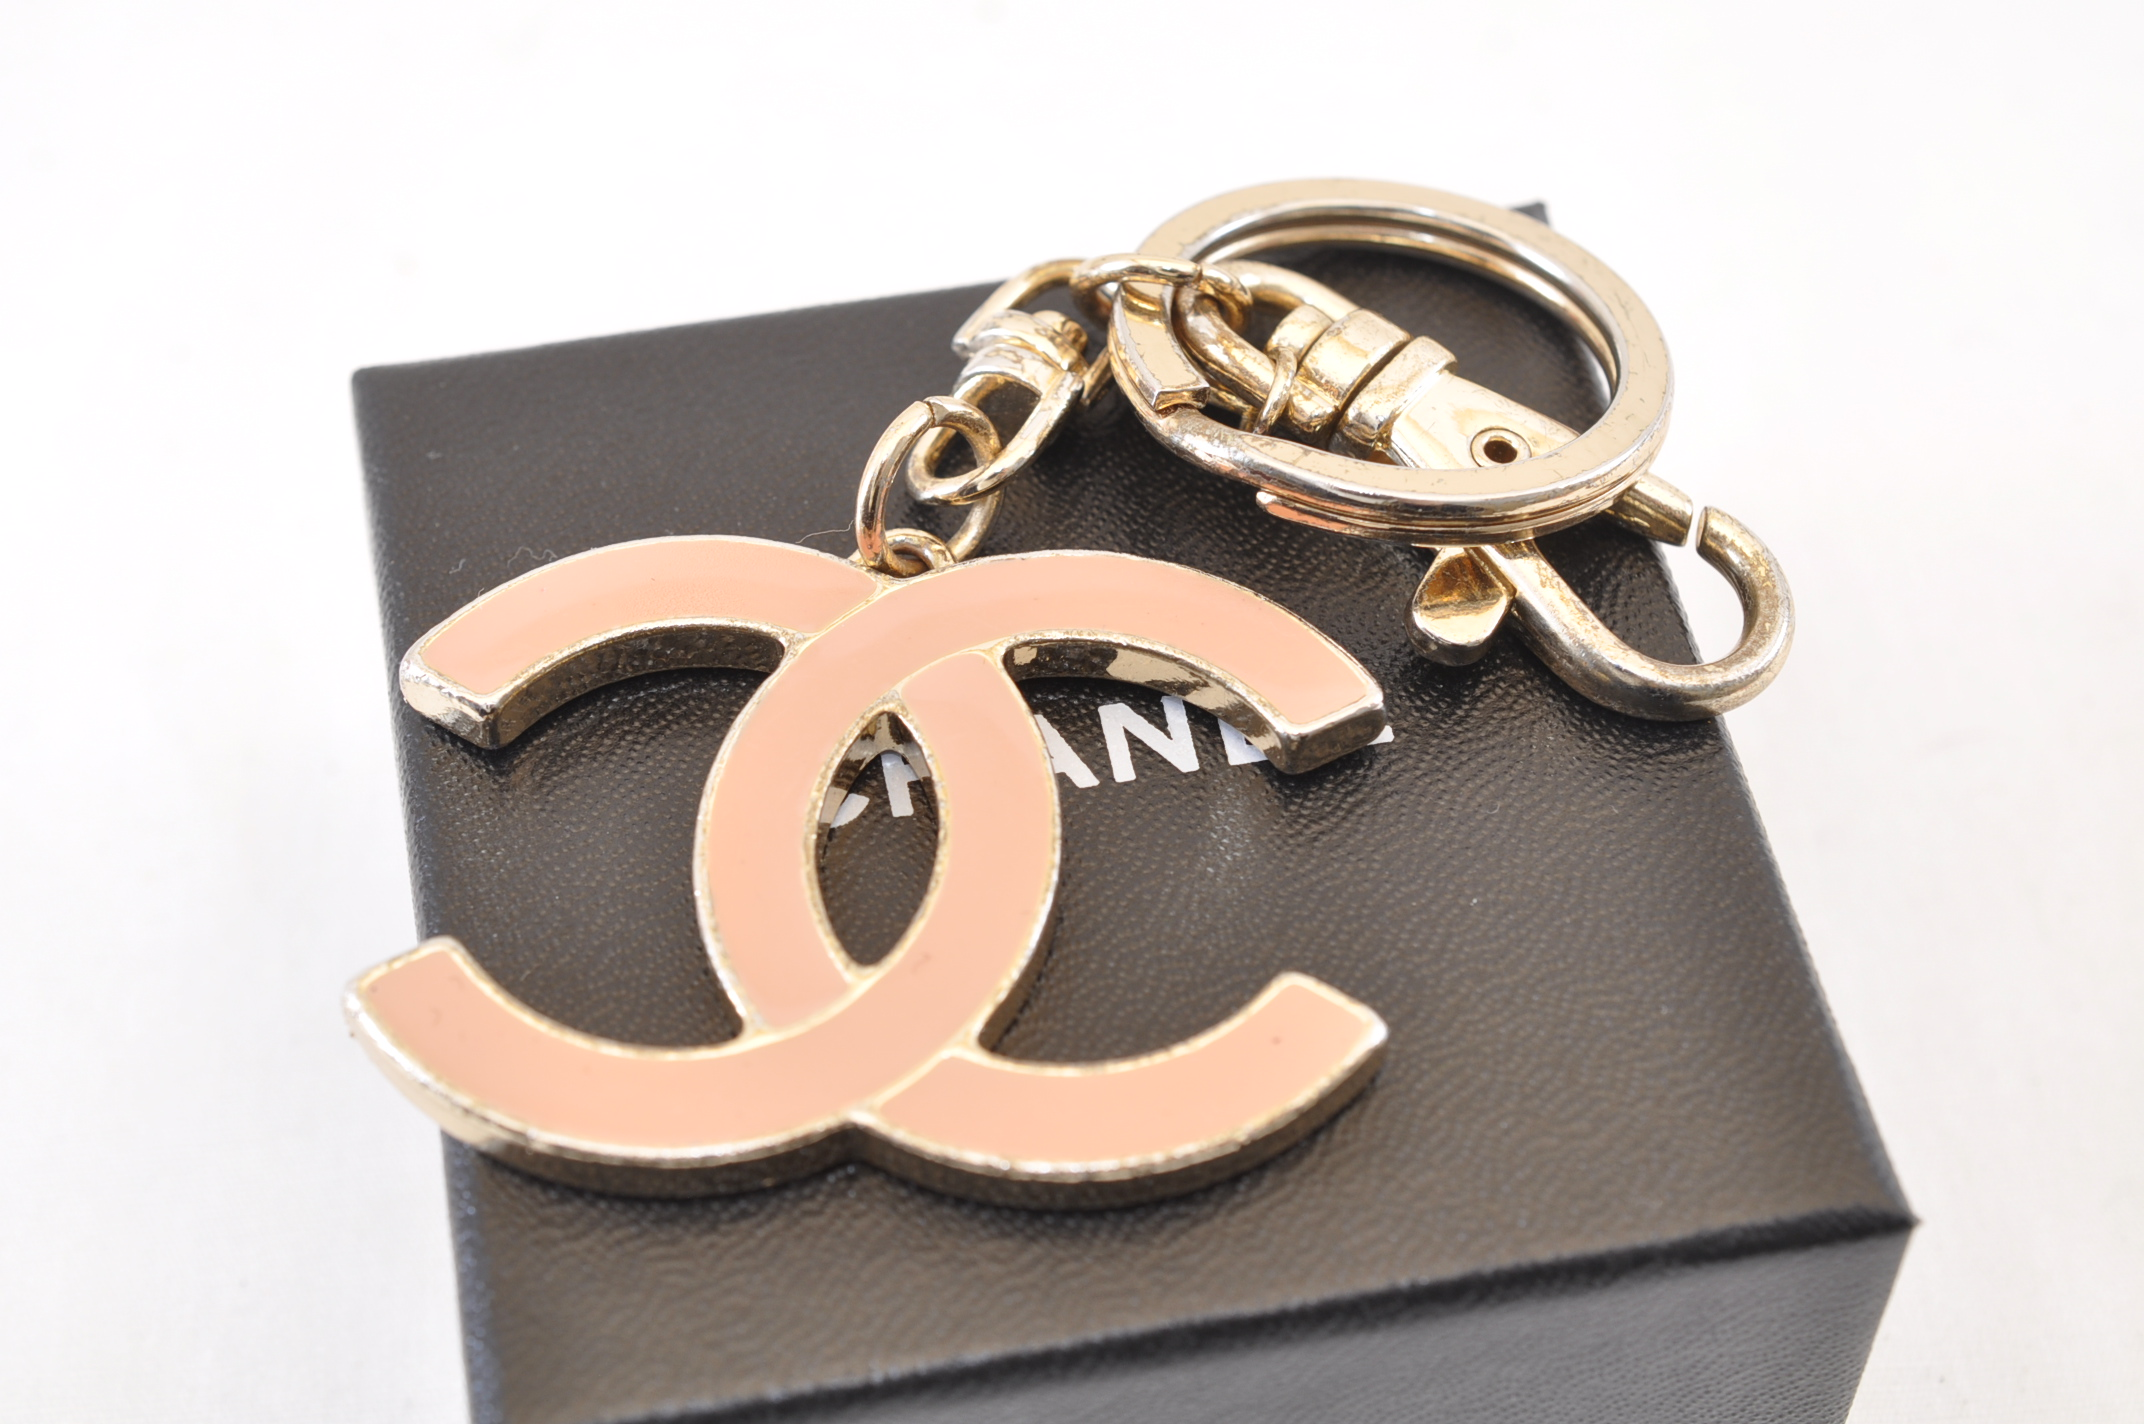 814688d7db51 CHANEL Charm Pink Key Chain Ring CC Auth sa1666. DSC0387.jpg ...